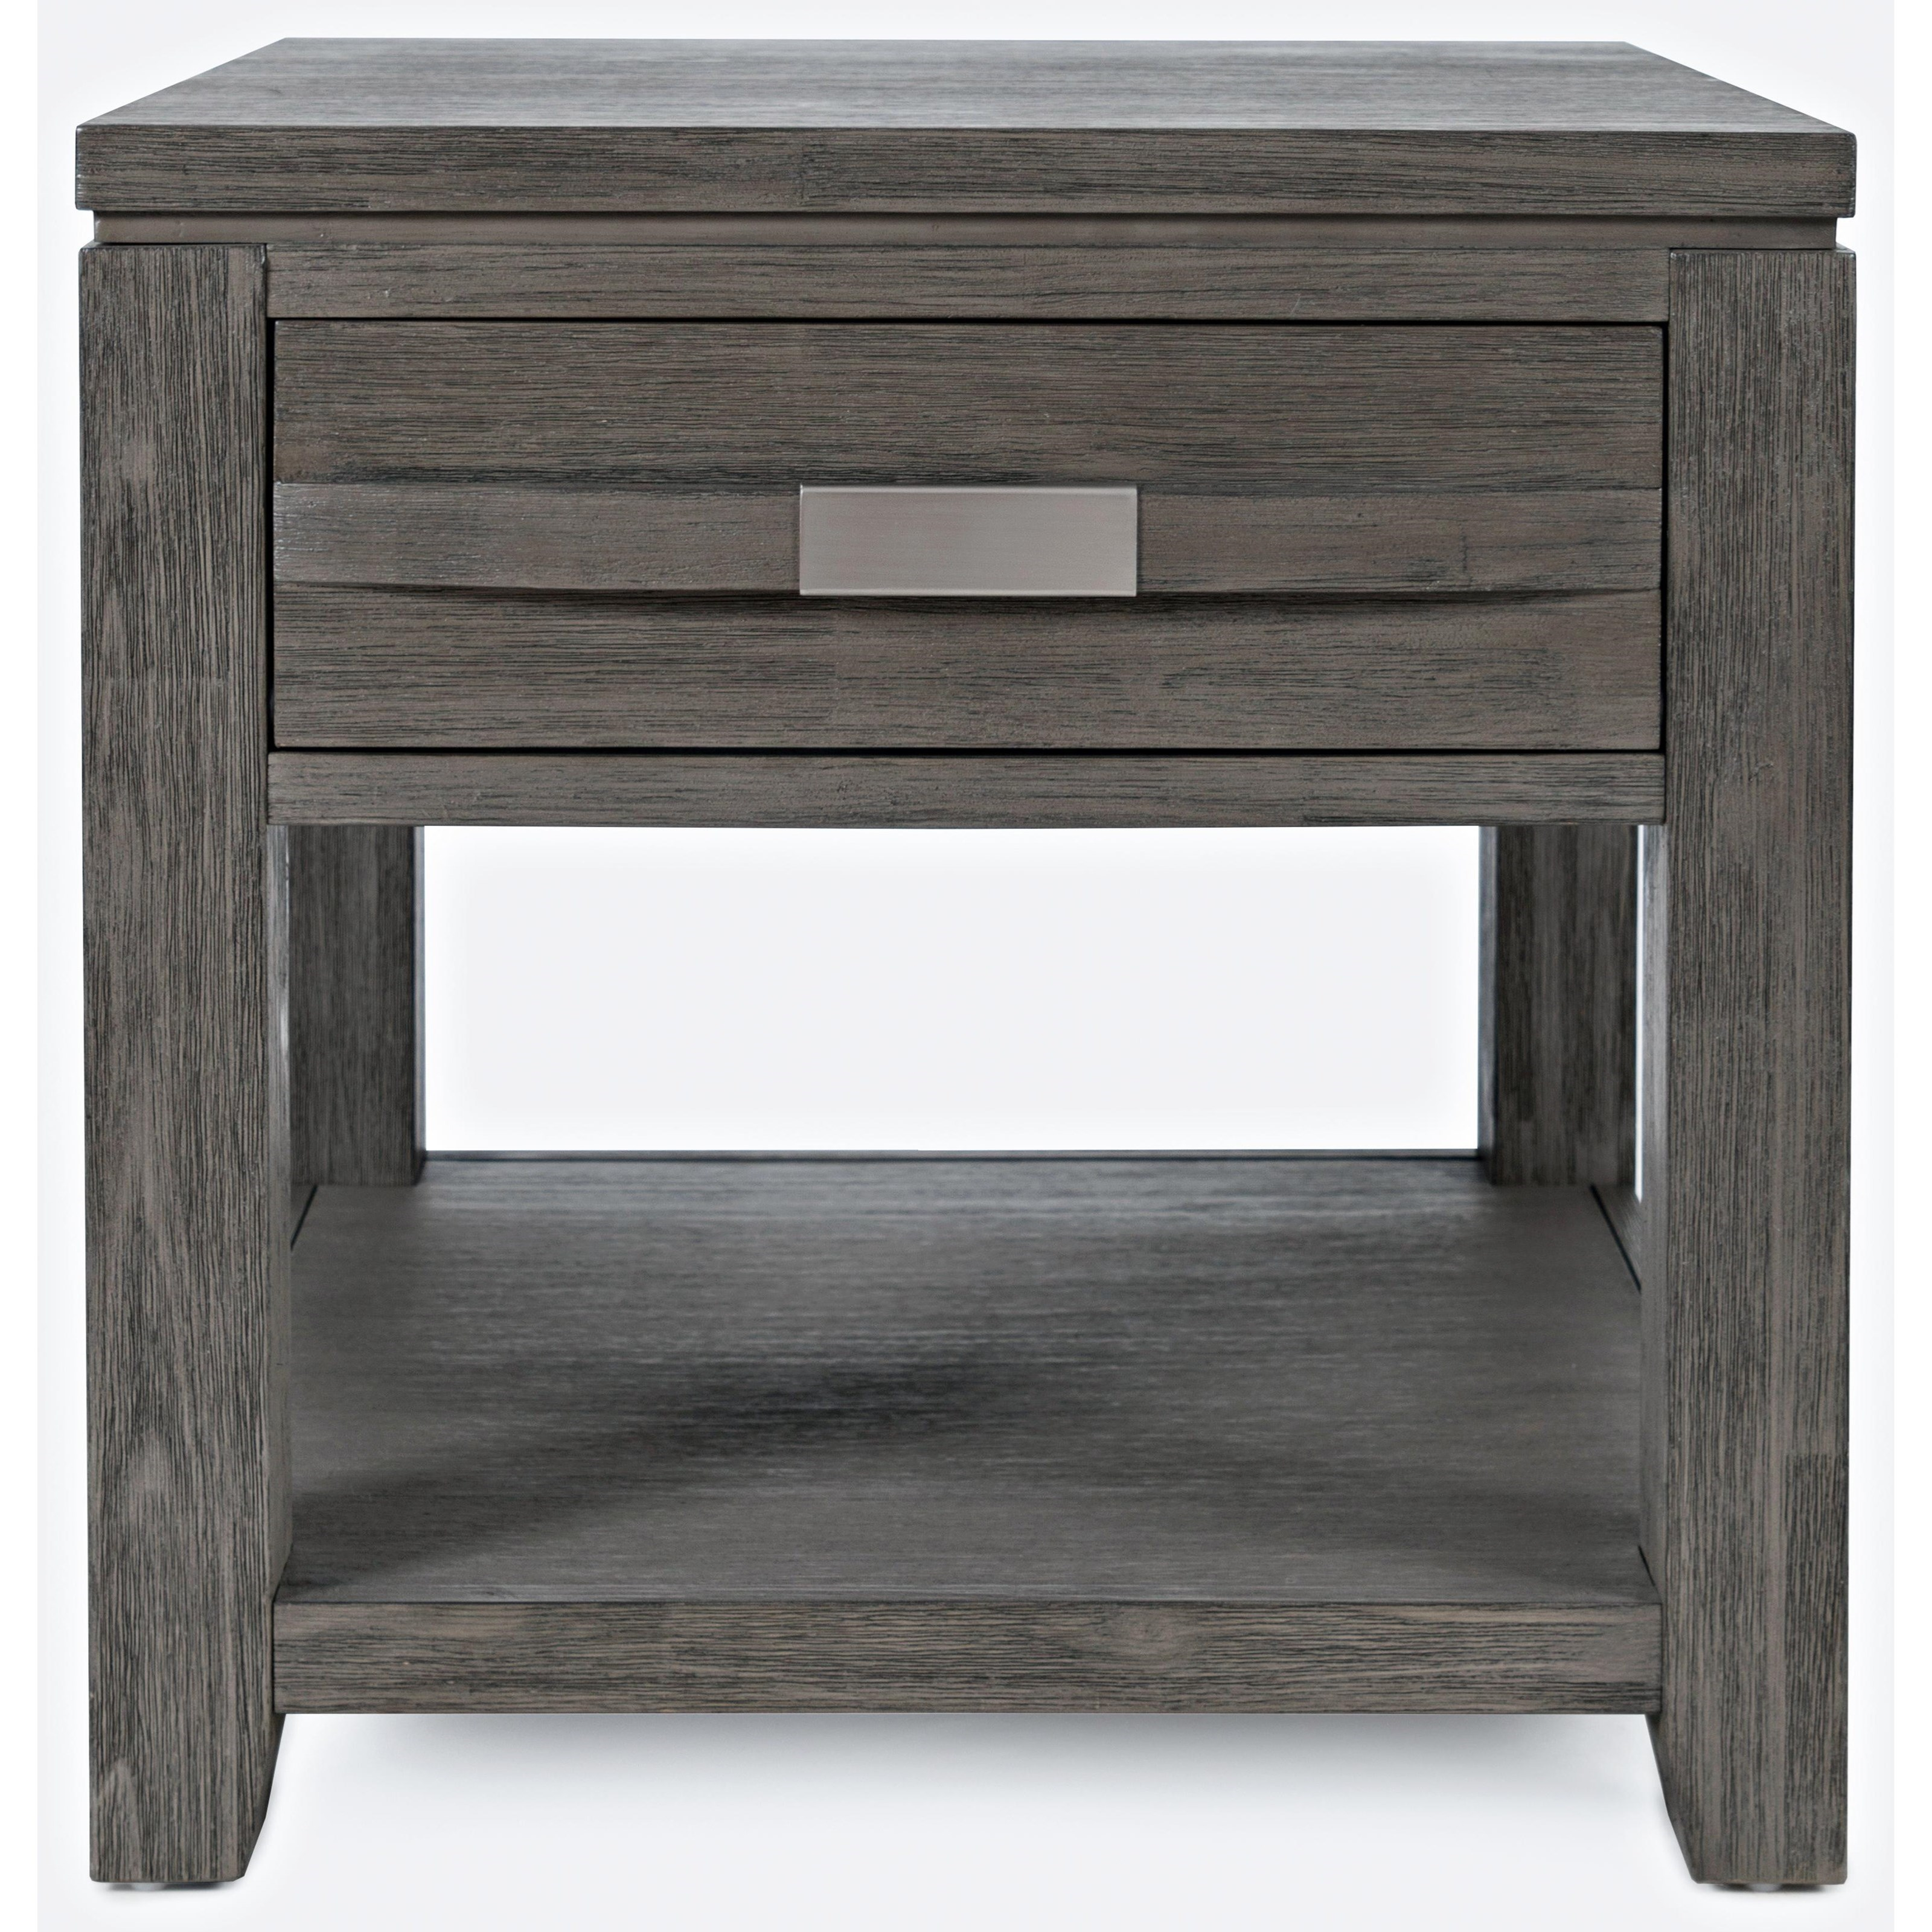 Altamonte  End Table with Shelf by Jofran at Steger's Furniture